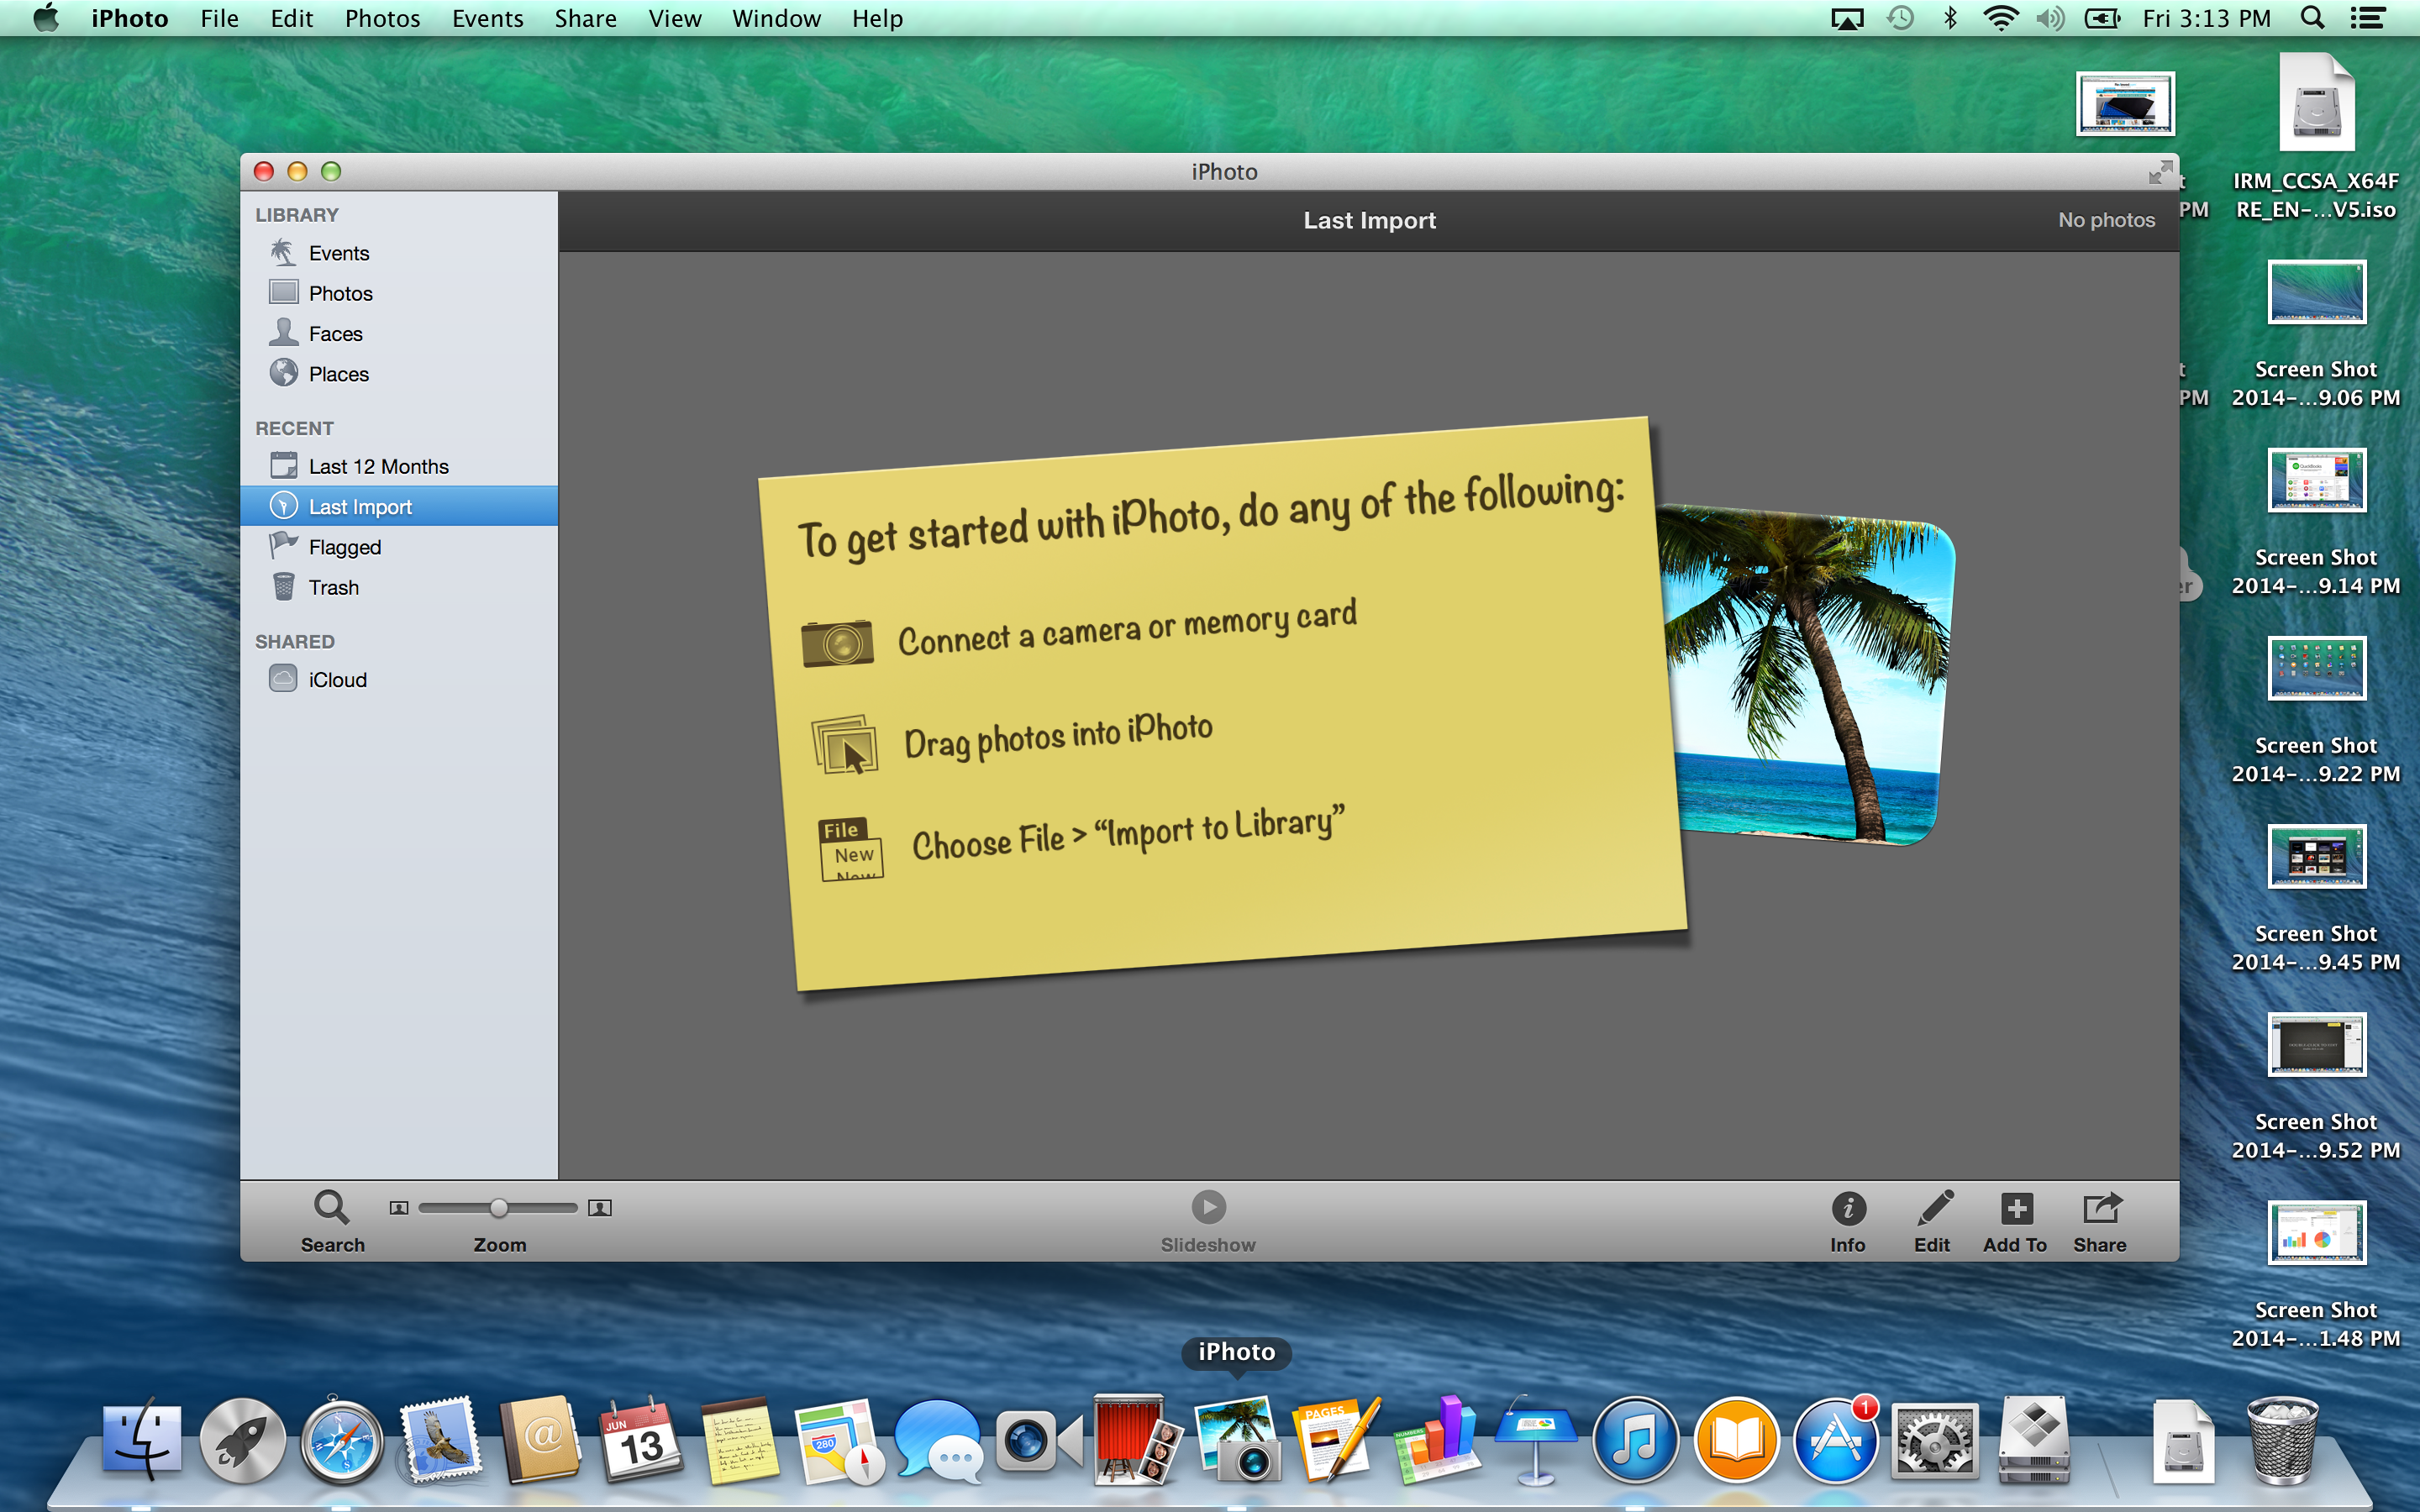 A screenshot of the Apple MacBook Pro with Retina Display's iPhoto software.